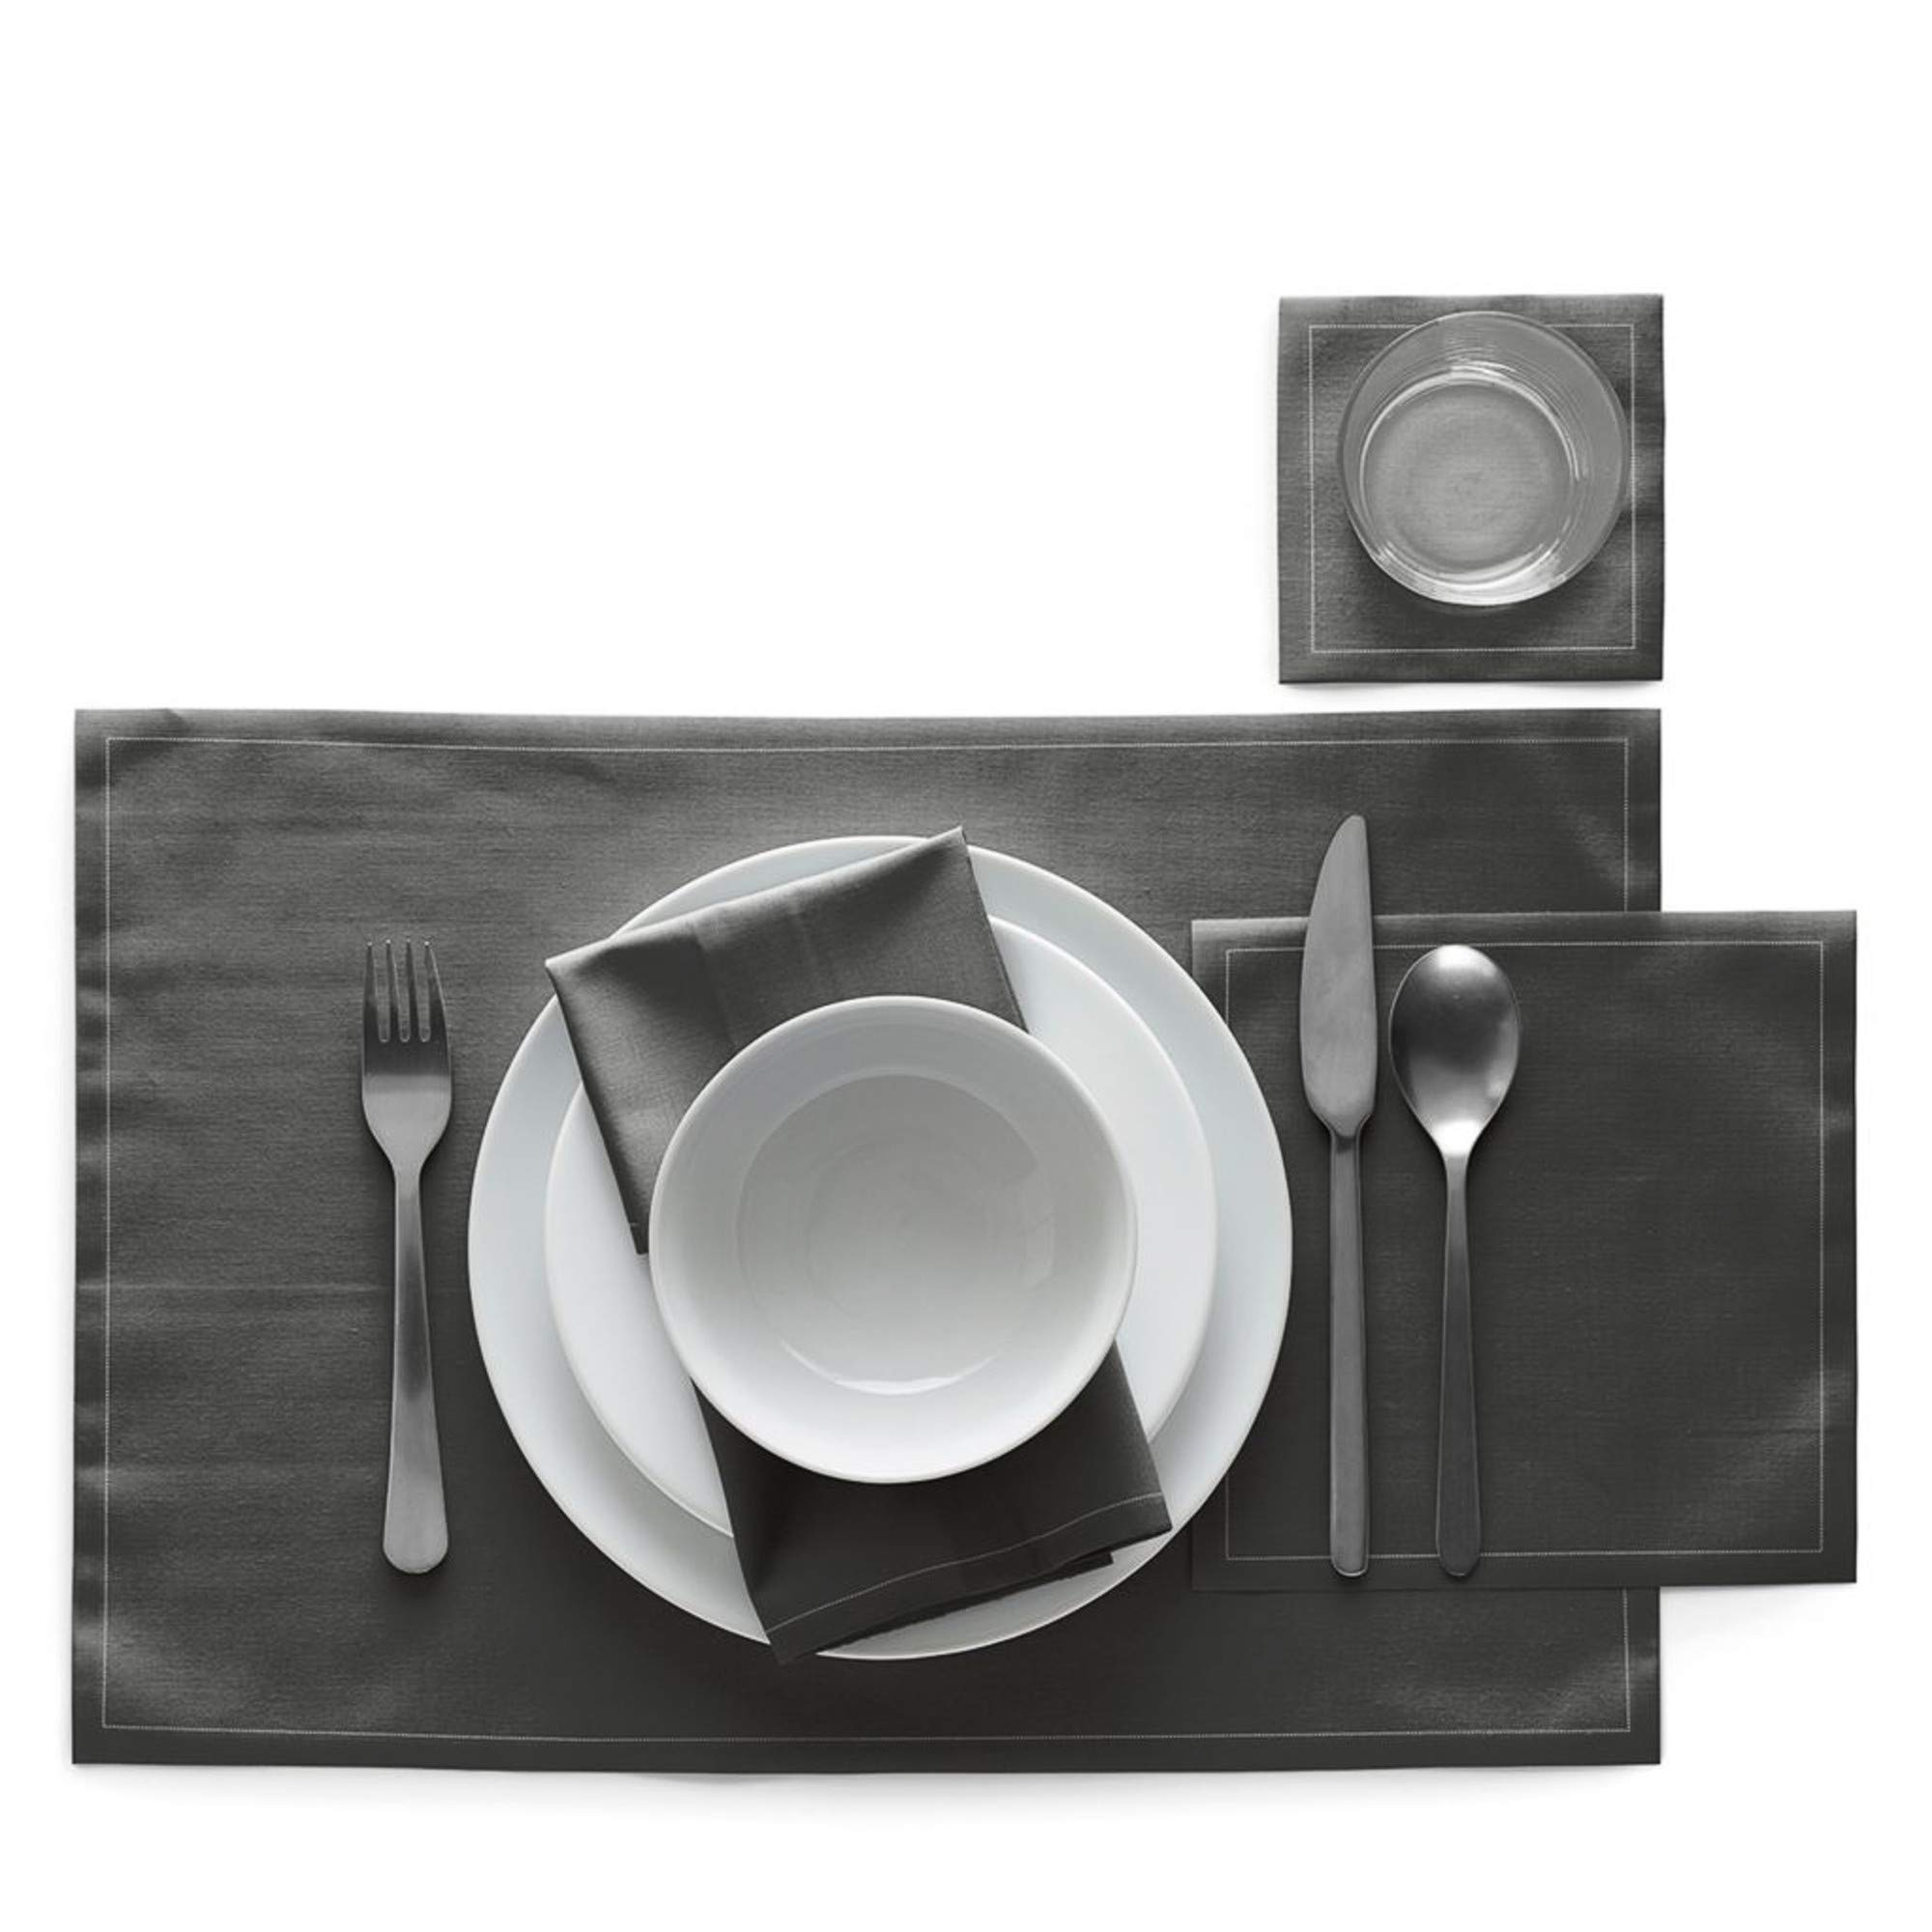 Cotton Placemat - 18.9 x 12.6 in - 12 units per roll - Anthracite by MY DRAP (Image #3)